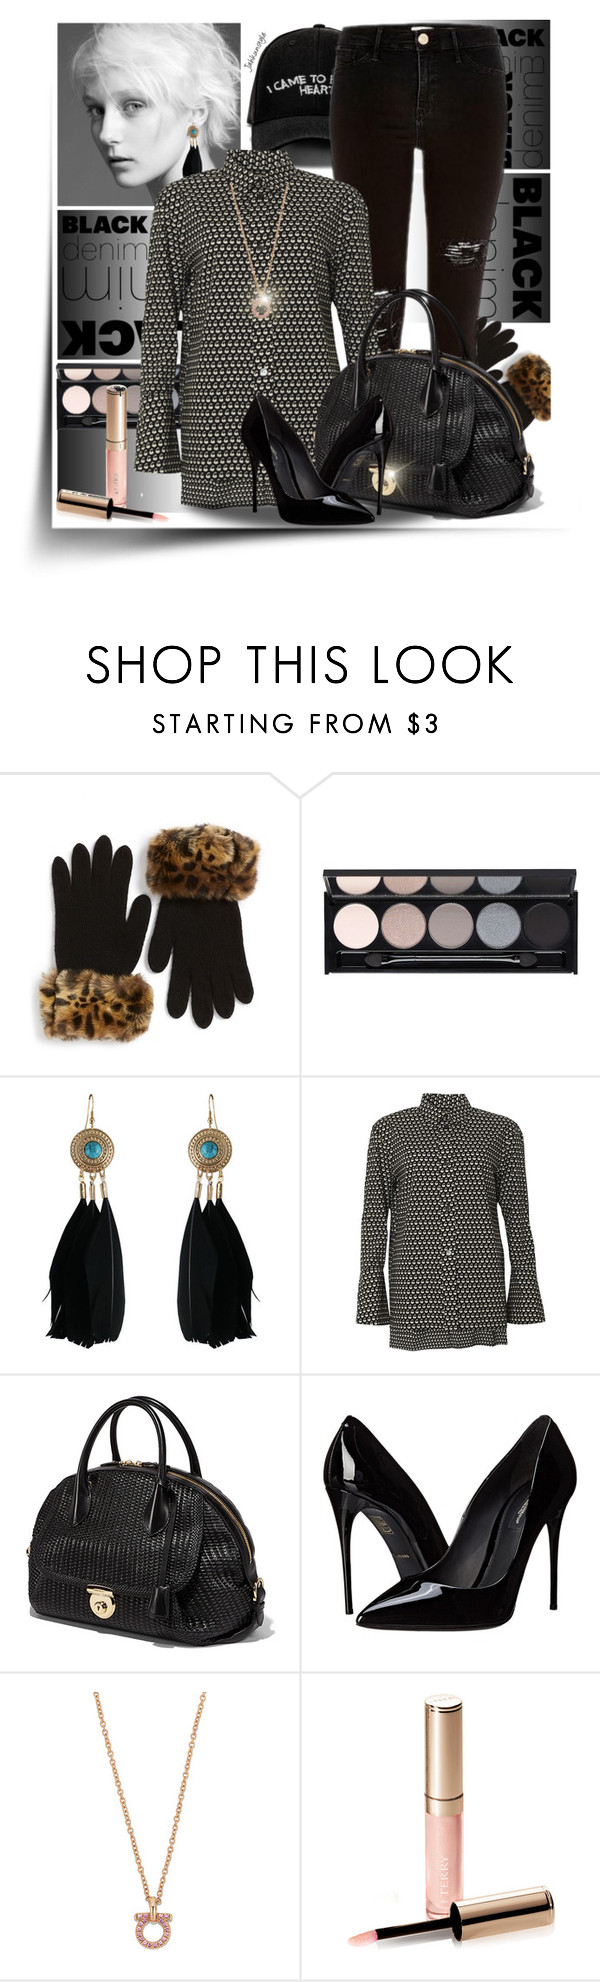 """""""Skinny"""" by jahkun ❤ liked on Polyvore featuring Manolo Blahnik, Parkhurst, River Island, Witchery, Chicnova Fashion, Marni, Dolce&Gabbana, By Terry, women's clothing and women's fashion"""